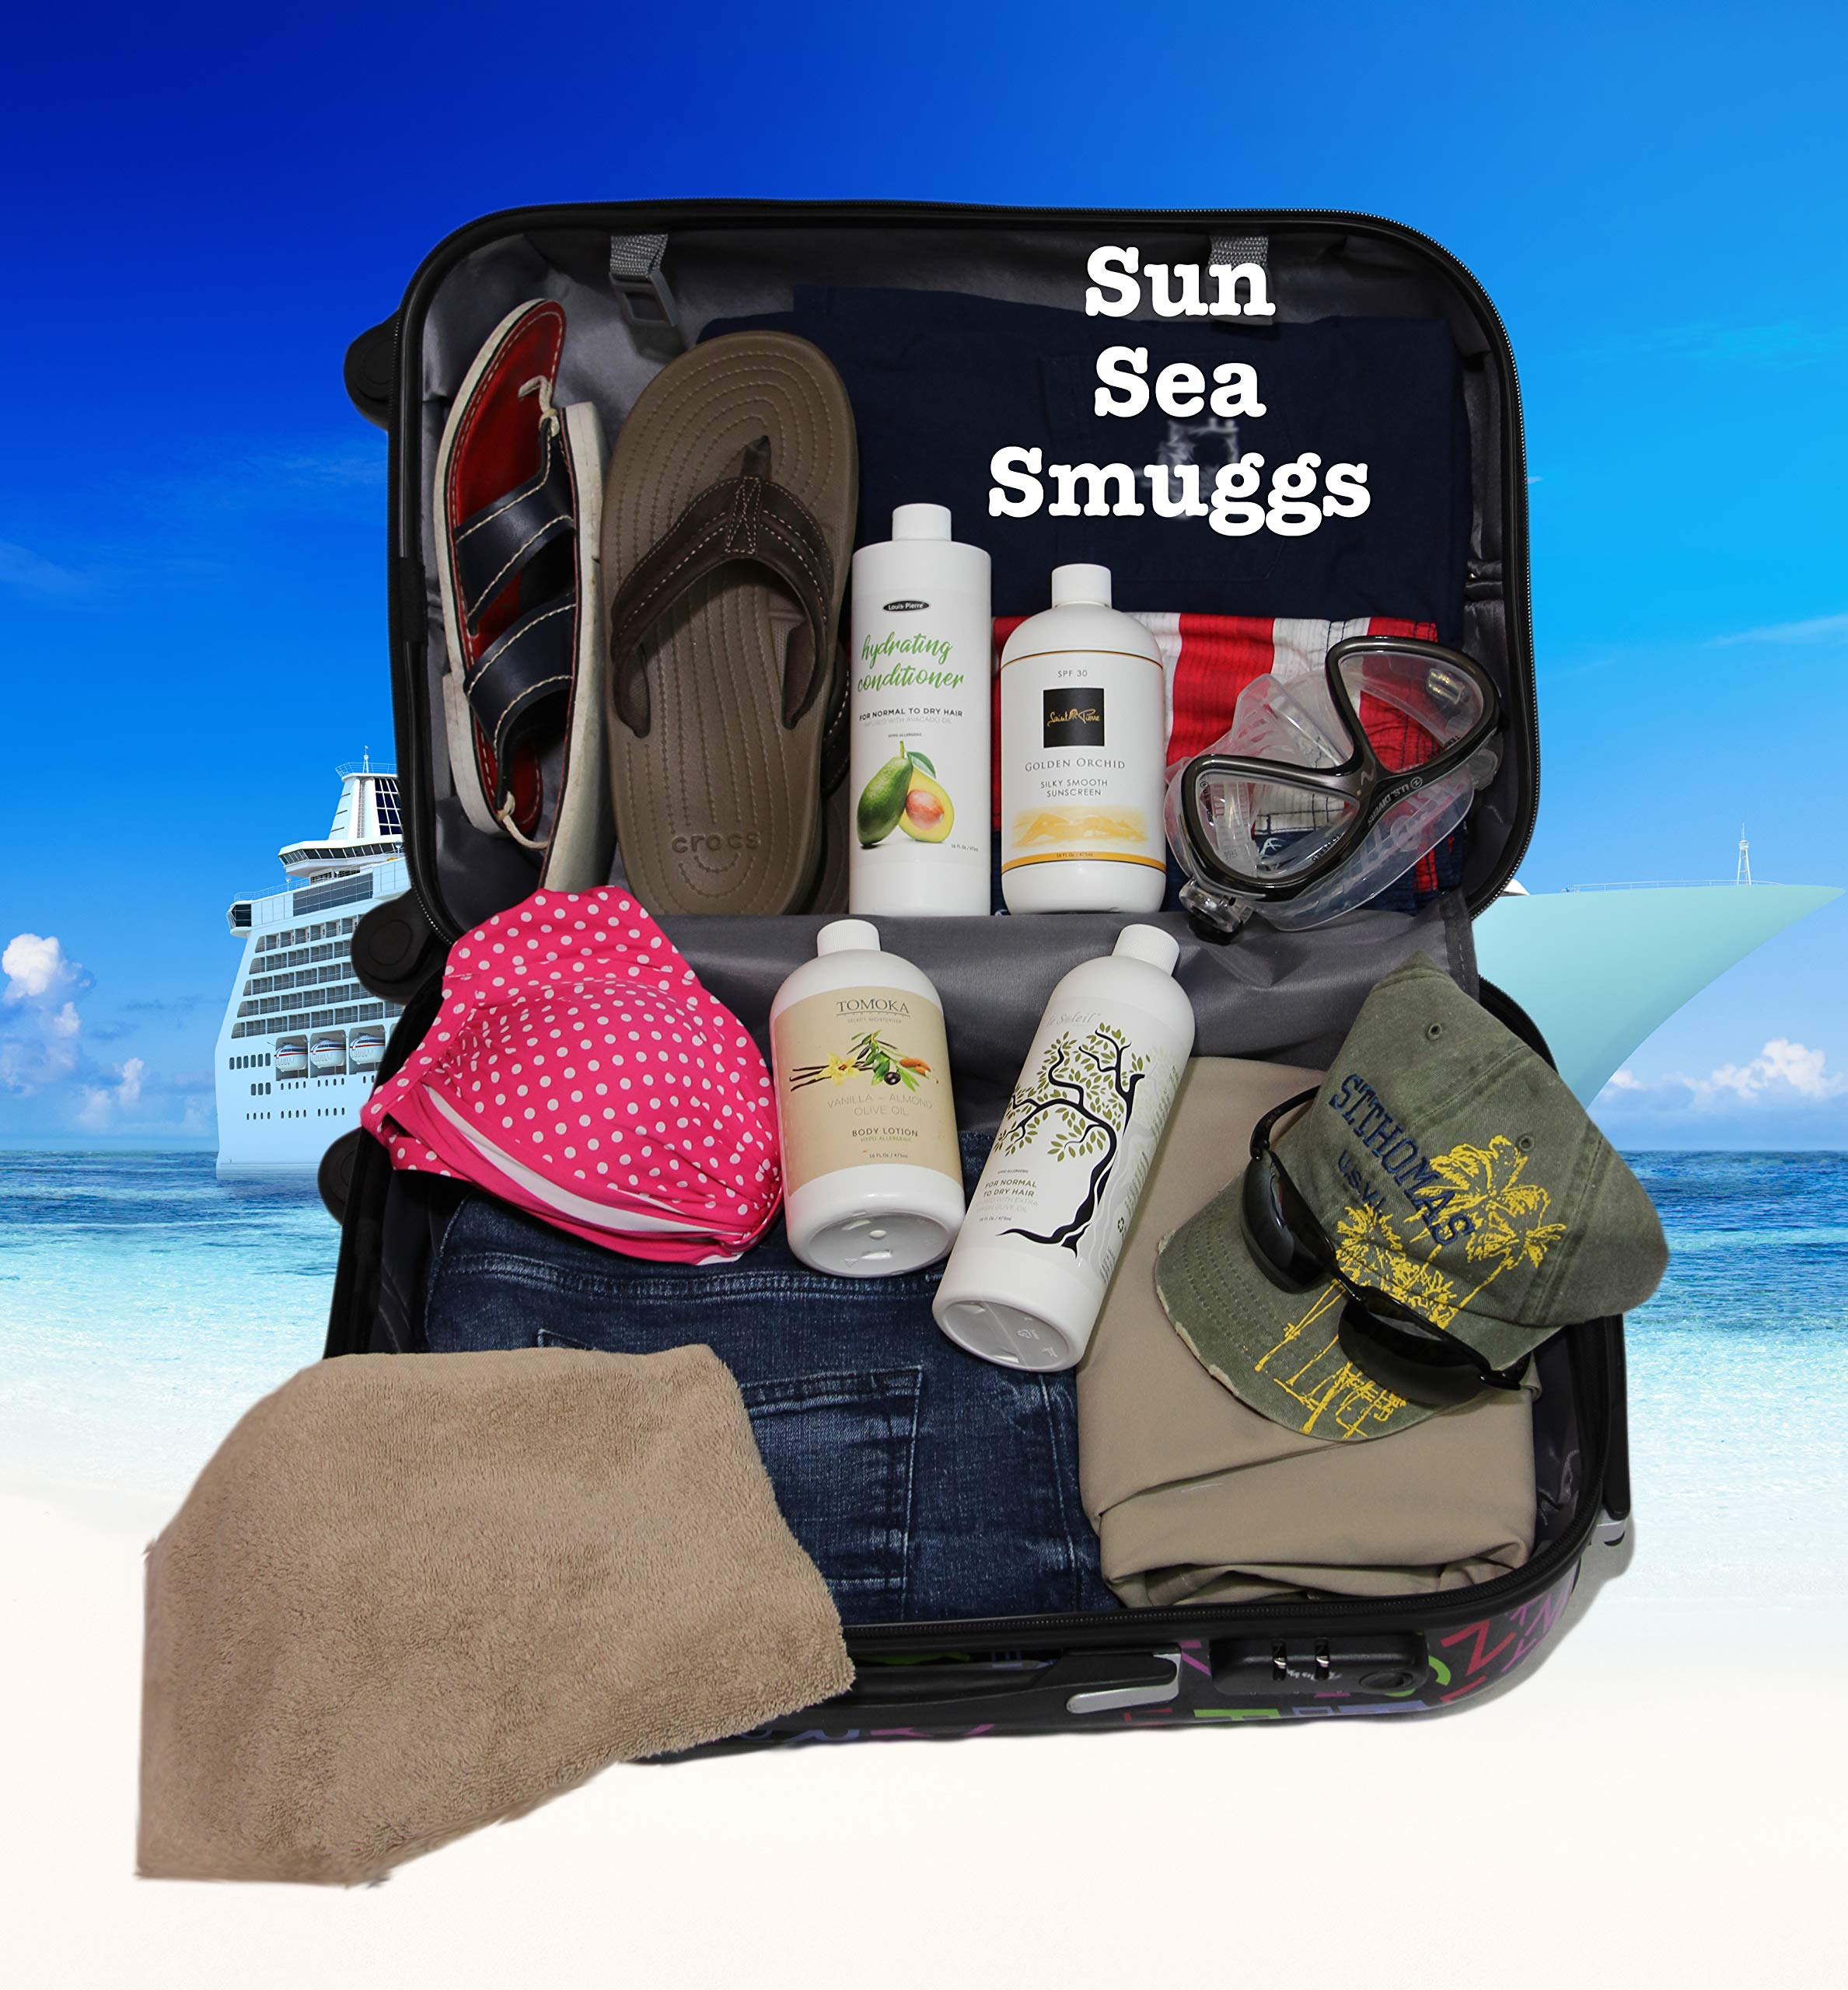 Smuggs Jugs Four Bottle Flask Kit (4-16oz) Smuggle Booze On Cruise Be A Rum Runner by Smuggs Jugs (Image #7)